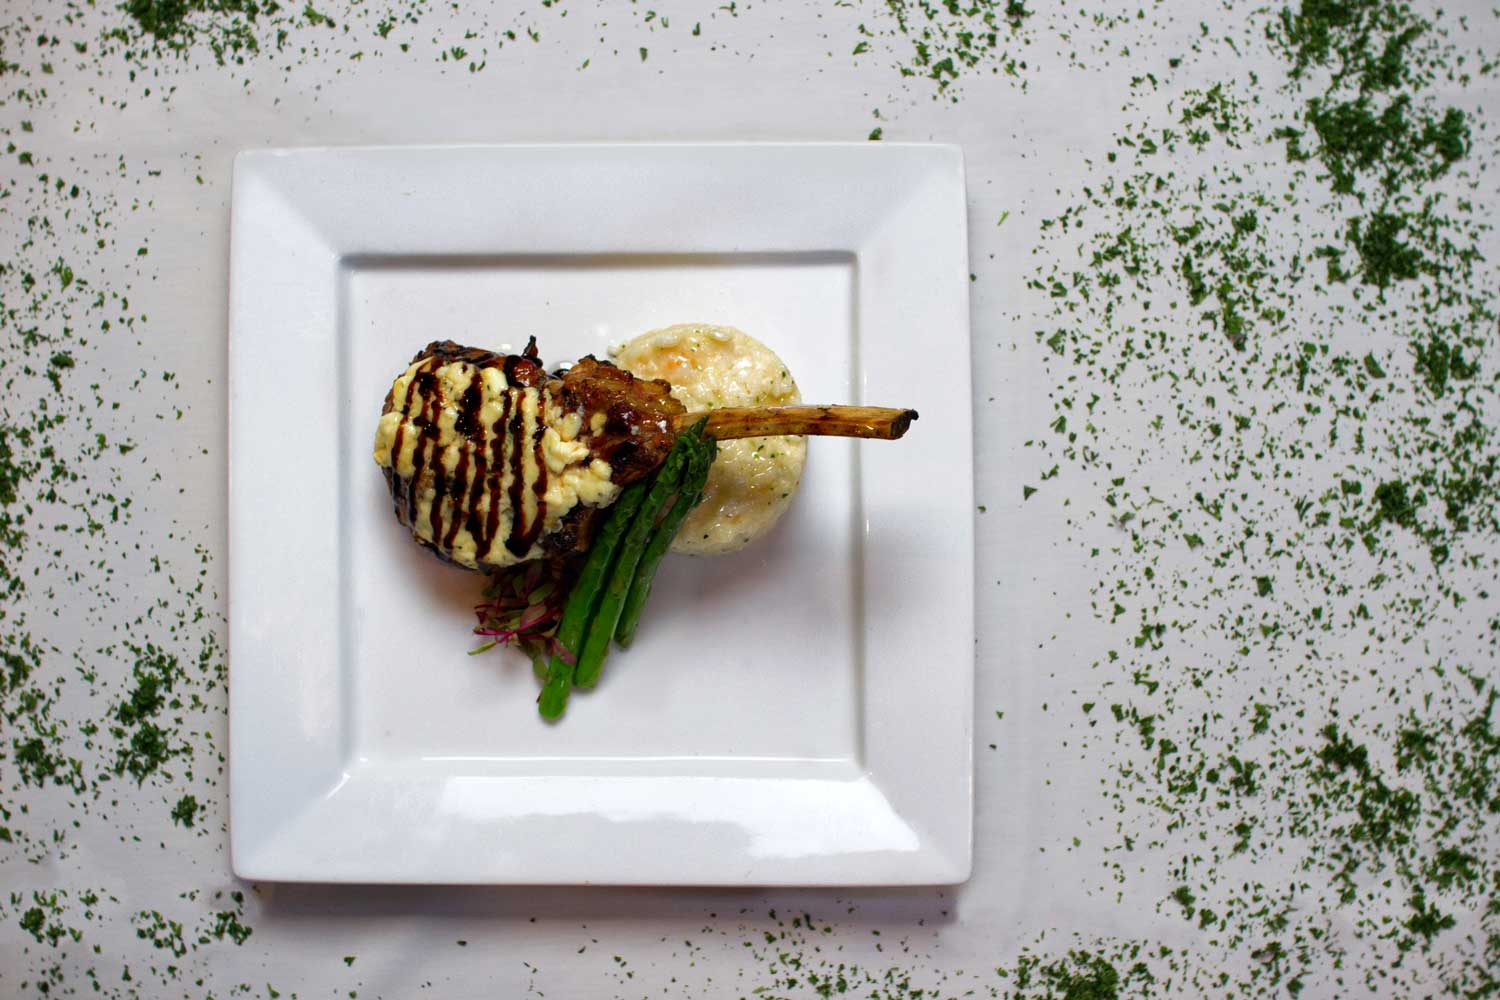 Veal Chop with Gargonzola Cheese and Balsamic drizzle